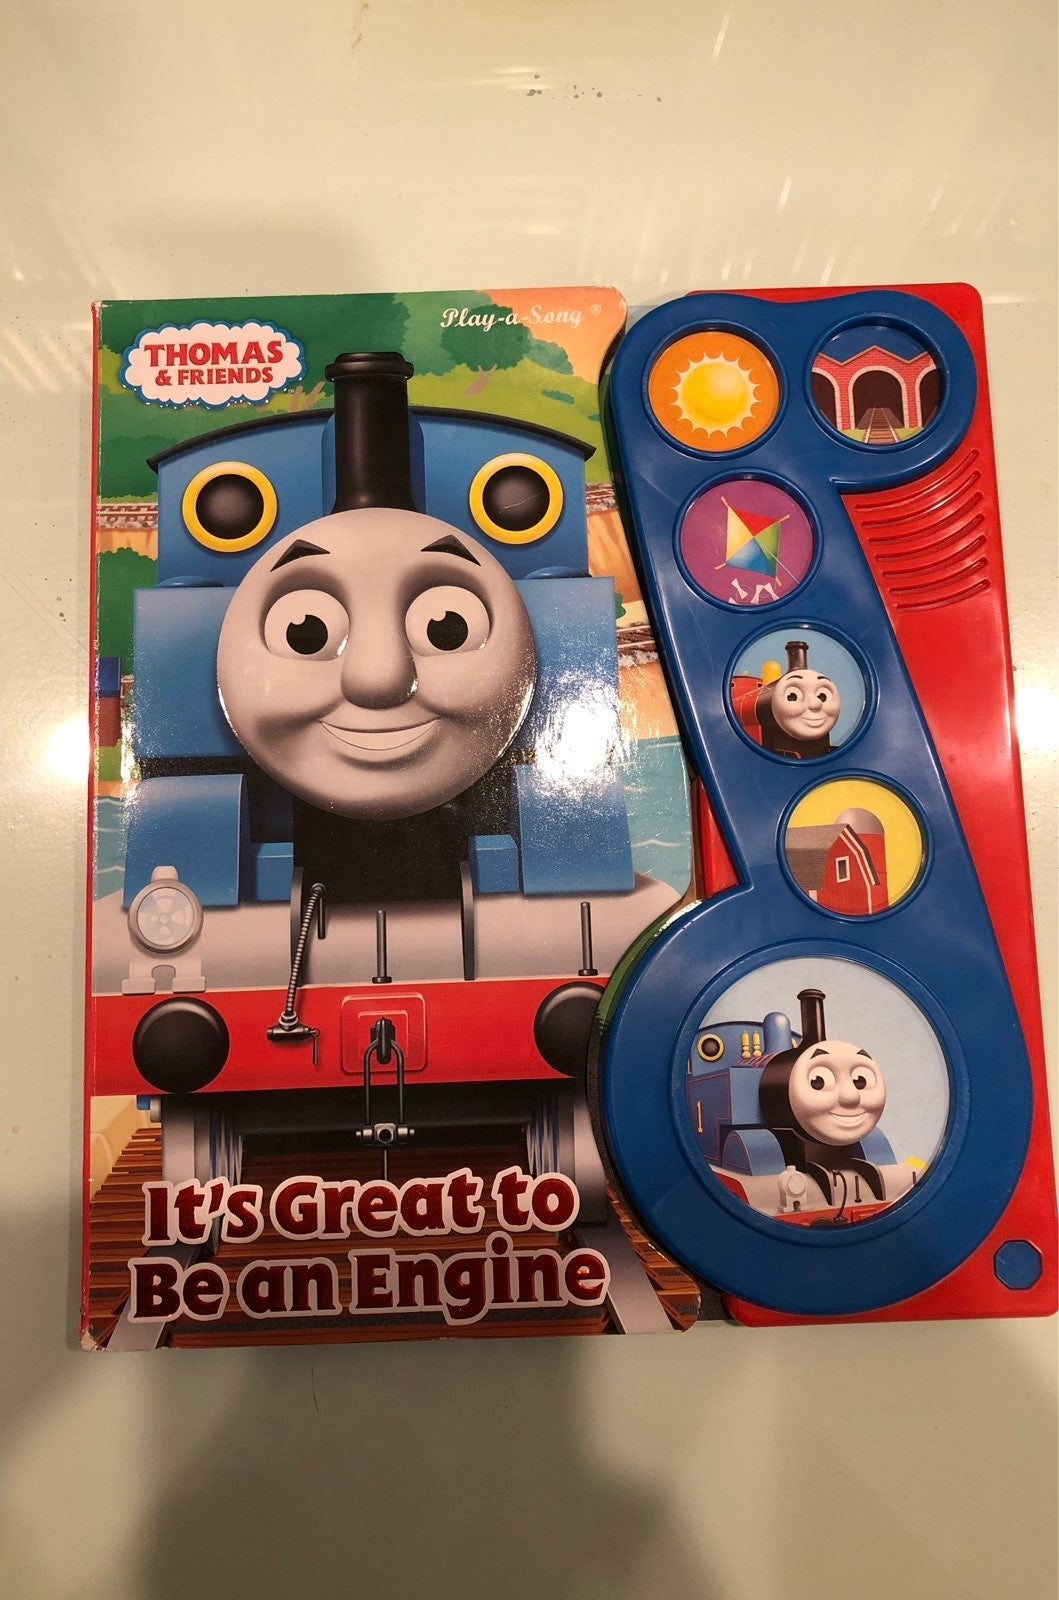 Thomas & Friends singing sound book